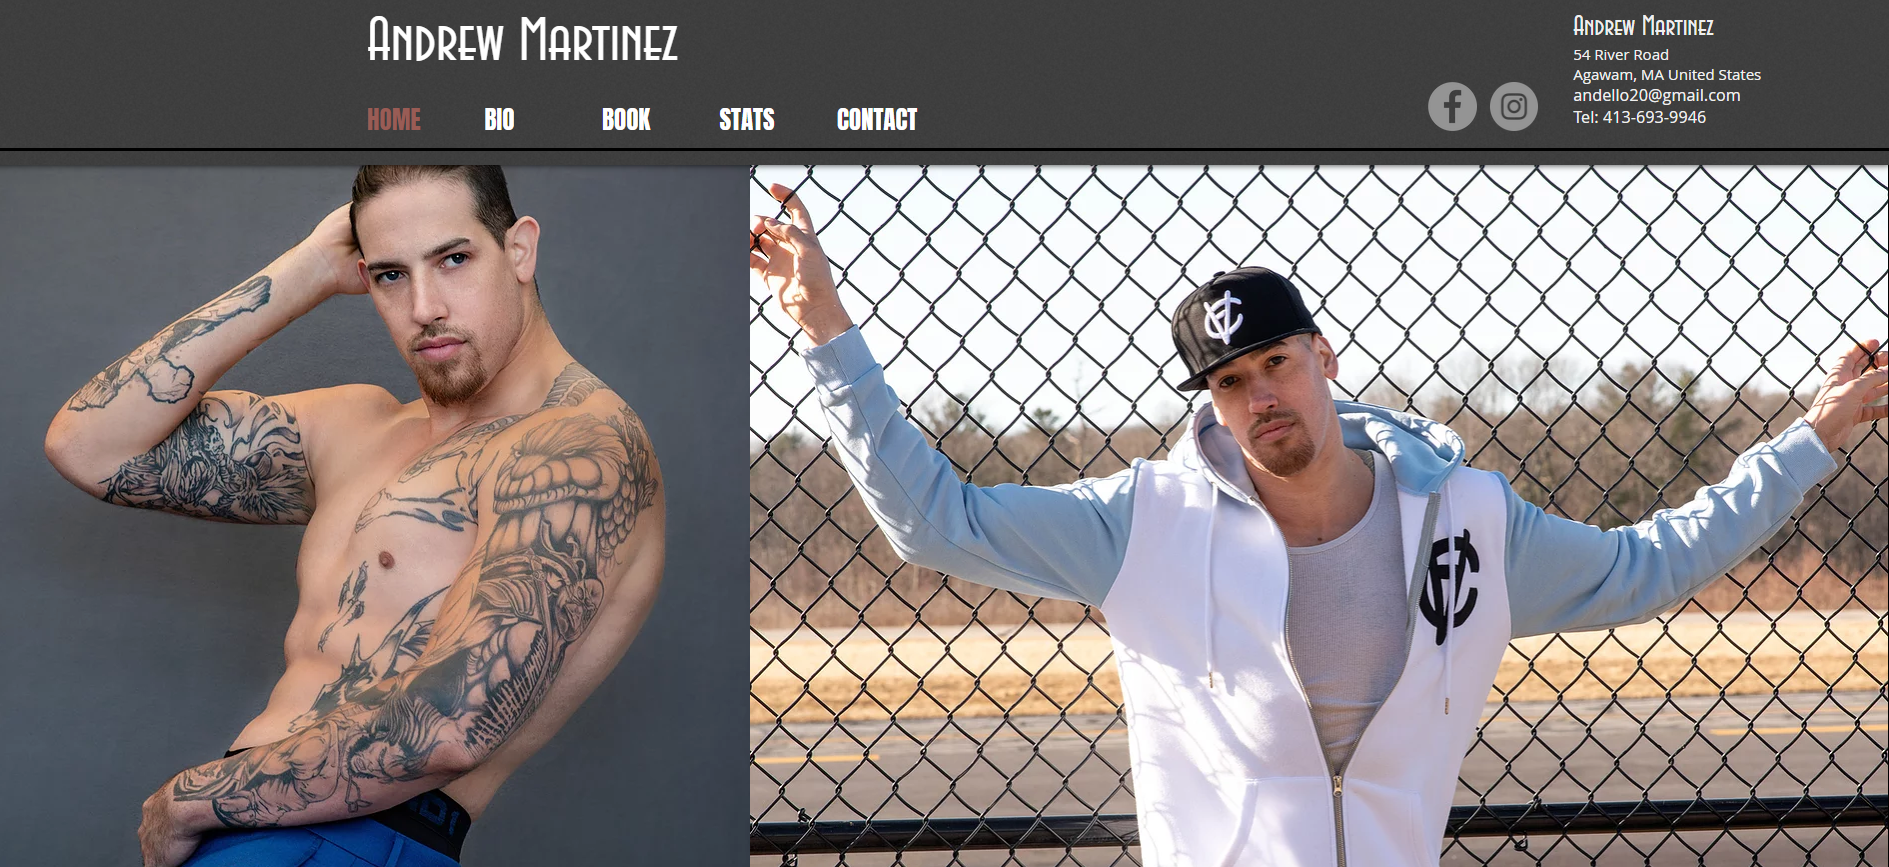 Andrew Martinez Website